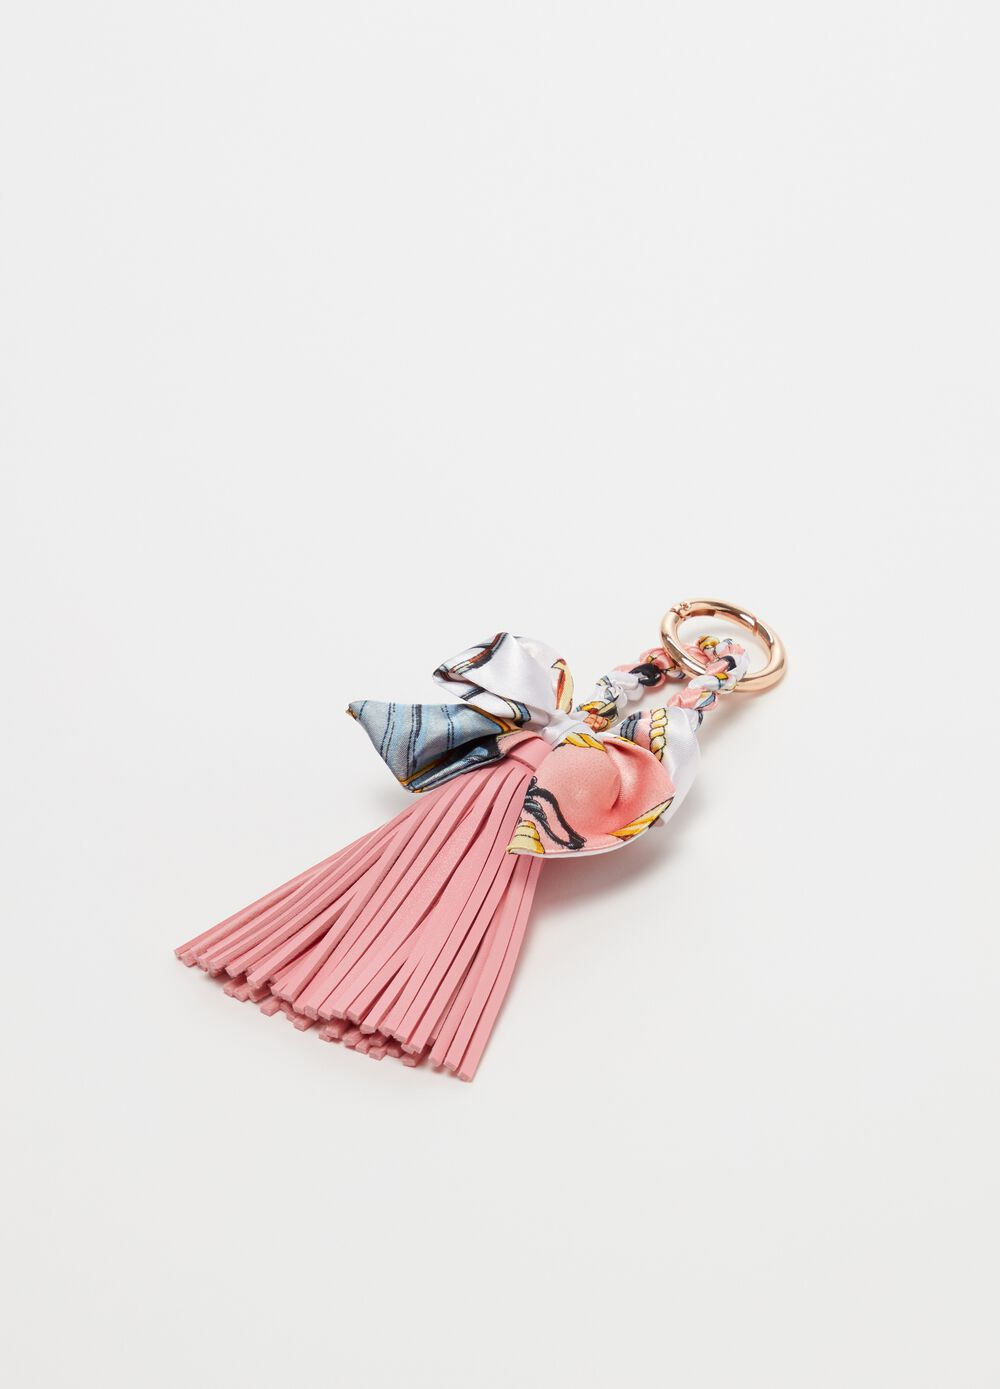 Keyring with tassel and patterned bow